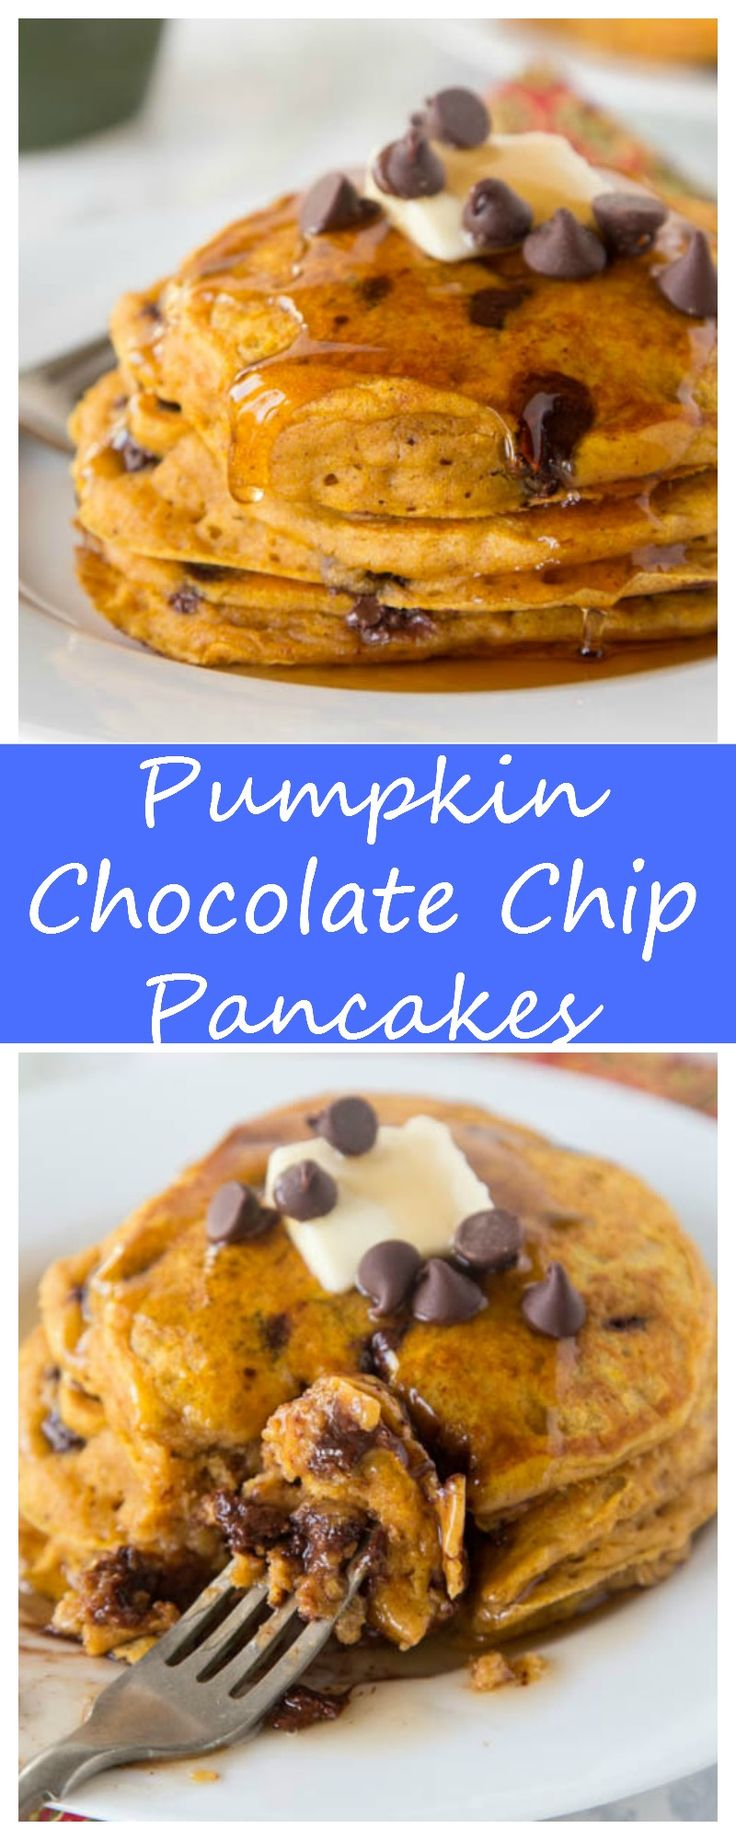 Pumpkin Chocolate Chip Pancakes – super light and fluffy pumpkin pancakes full with lots of chocolate chips and topped with maple syrup.